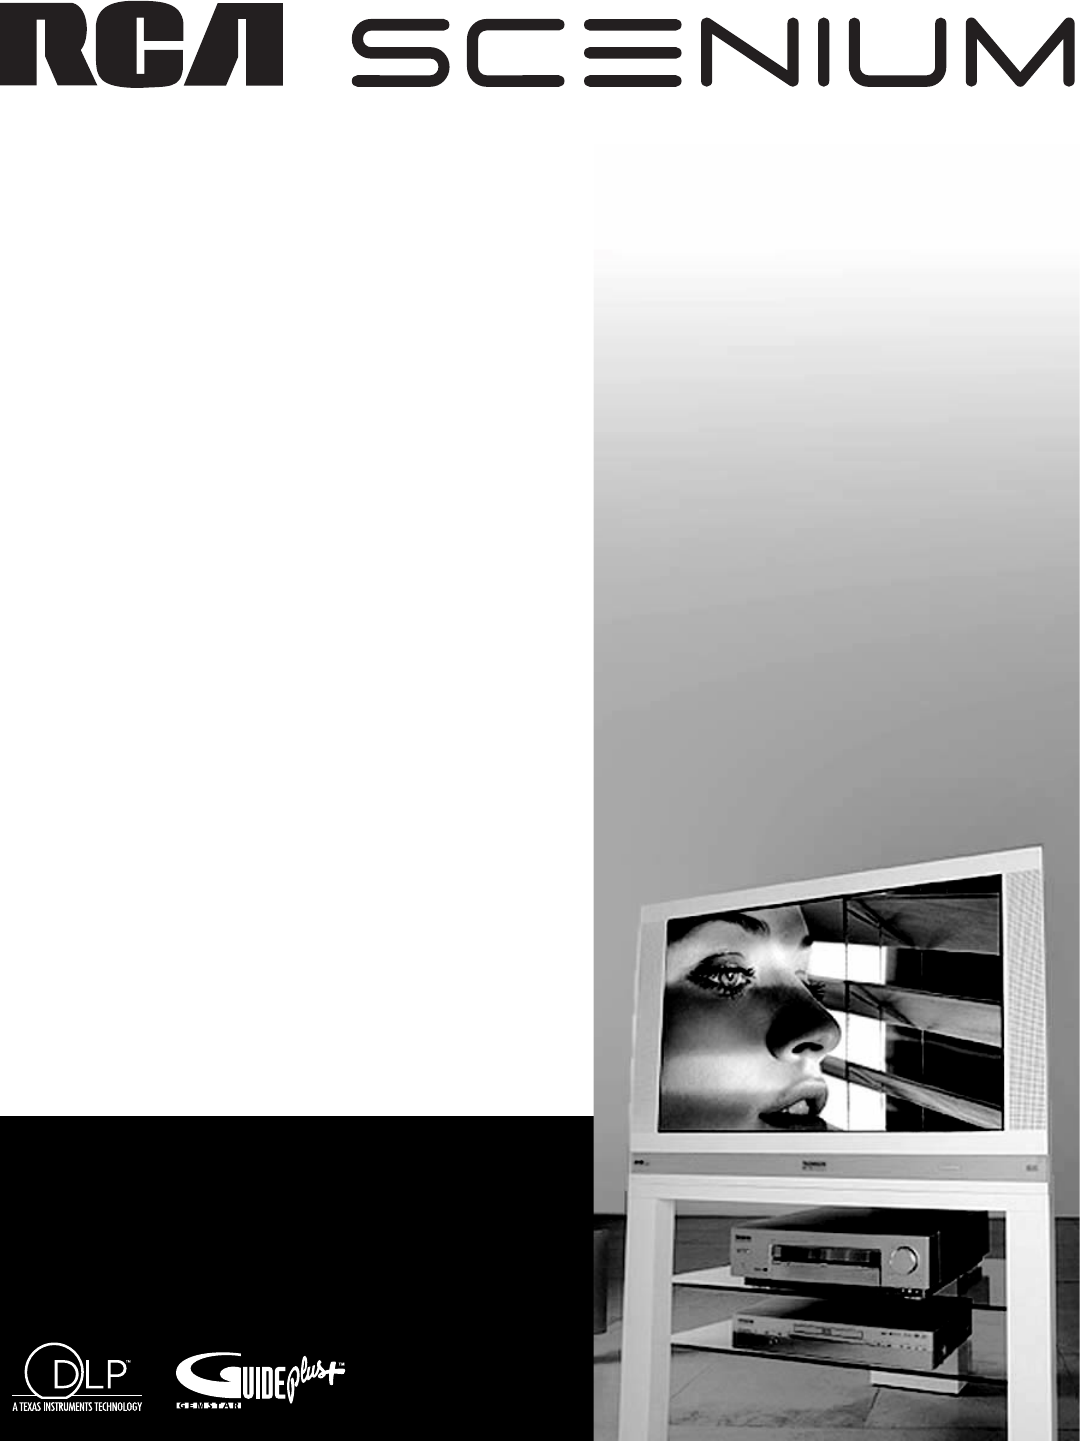 rca projection television hdlp50w151 user guide manualsonline com rh tv manualsonline com RCA Scenium 50 HDTV RCA Scenium Blinks 5 Times